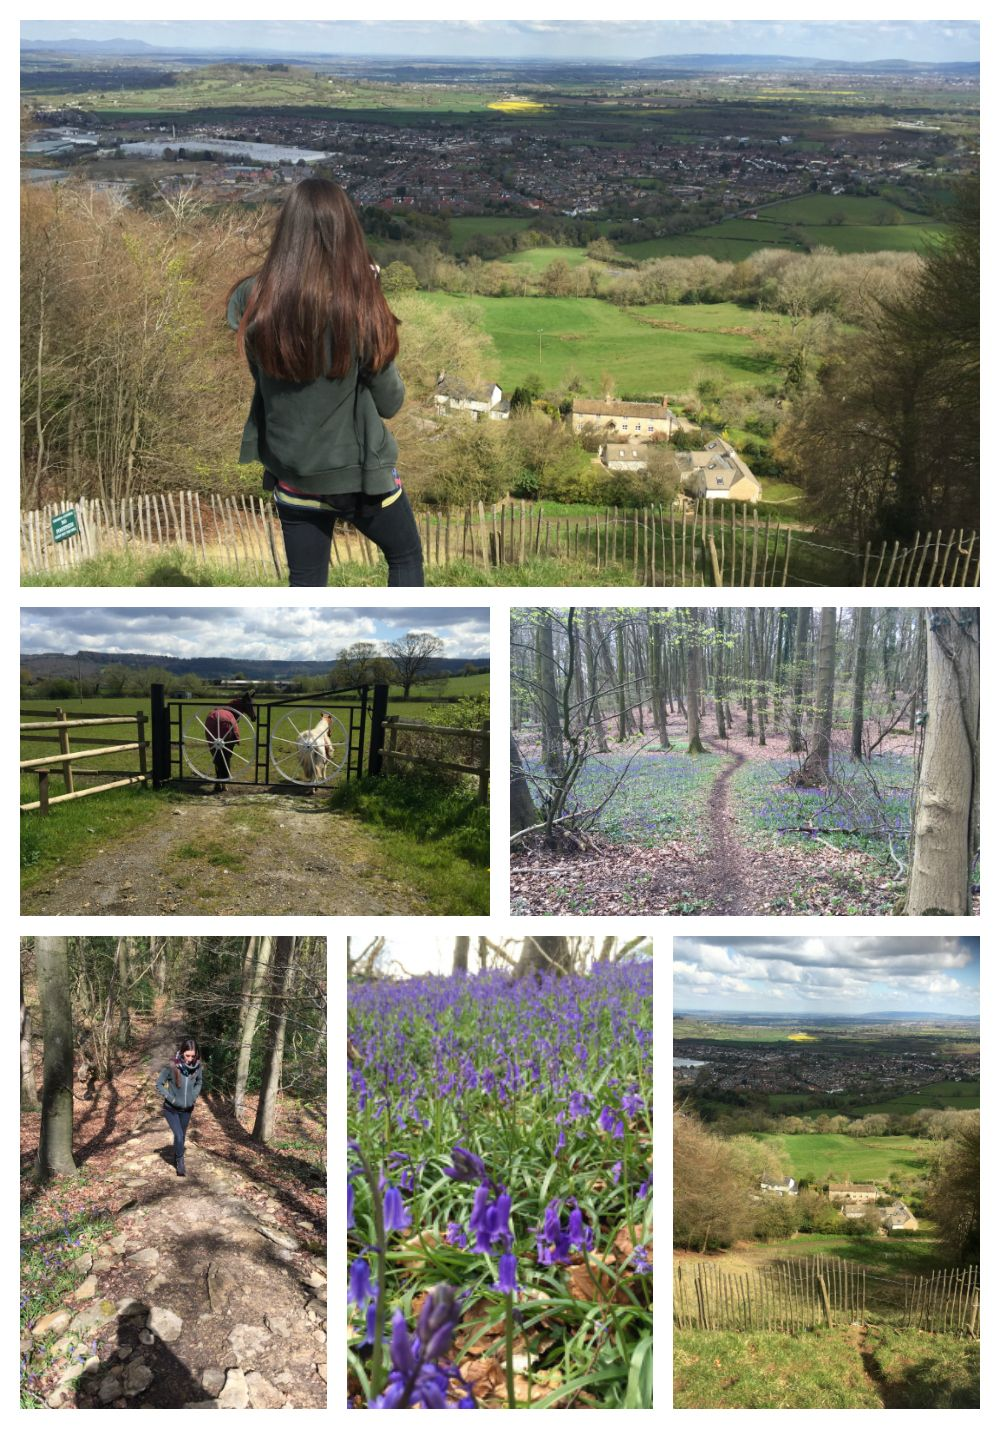 Coopers Hill April 2016 lylia Rose blog brocworth gloucester